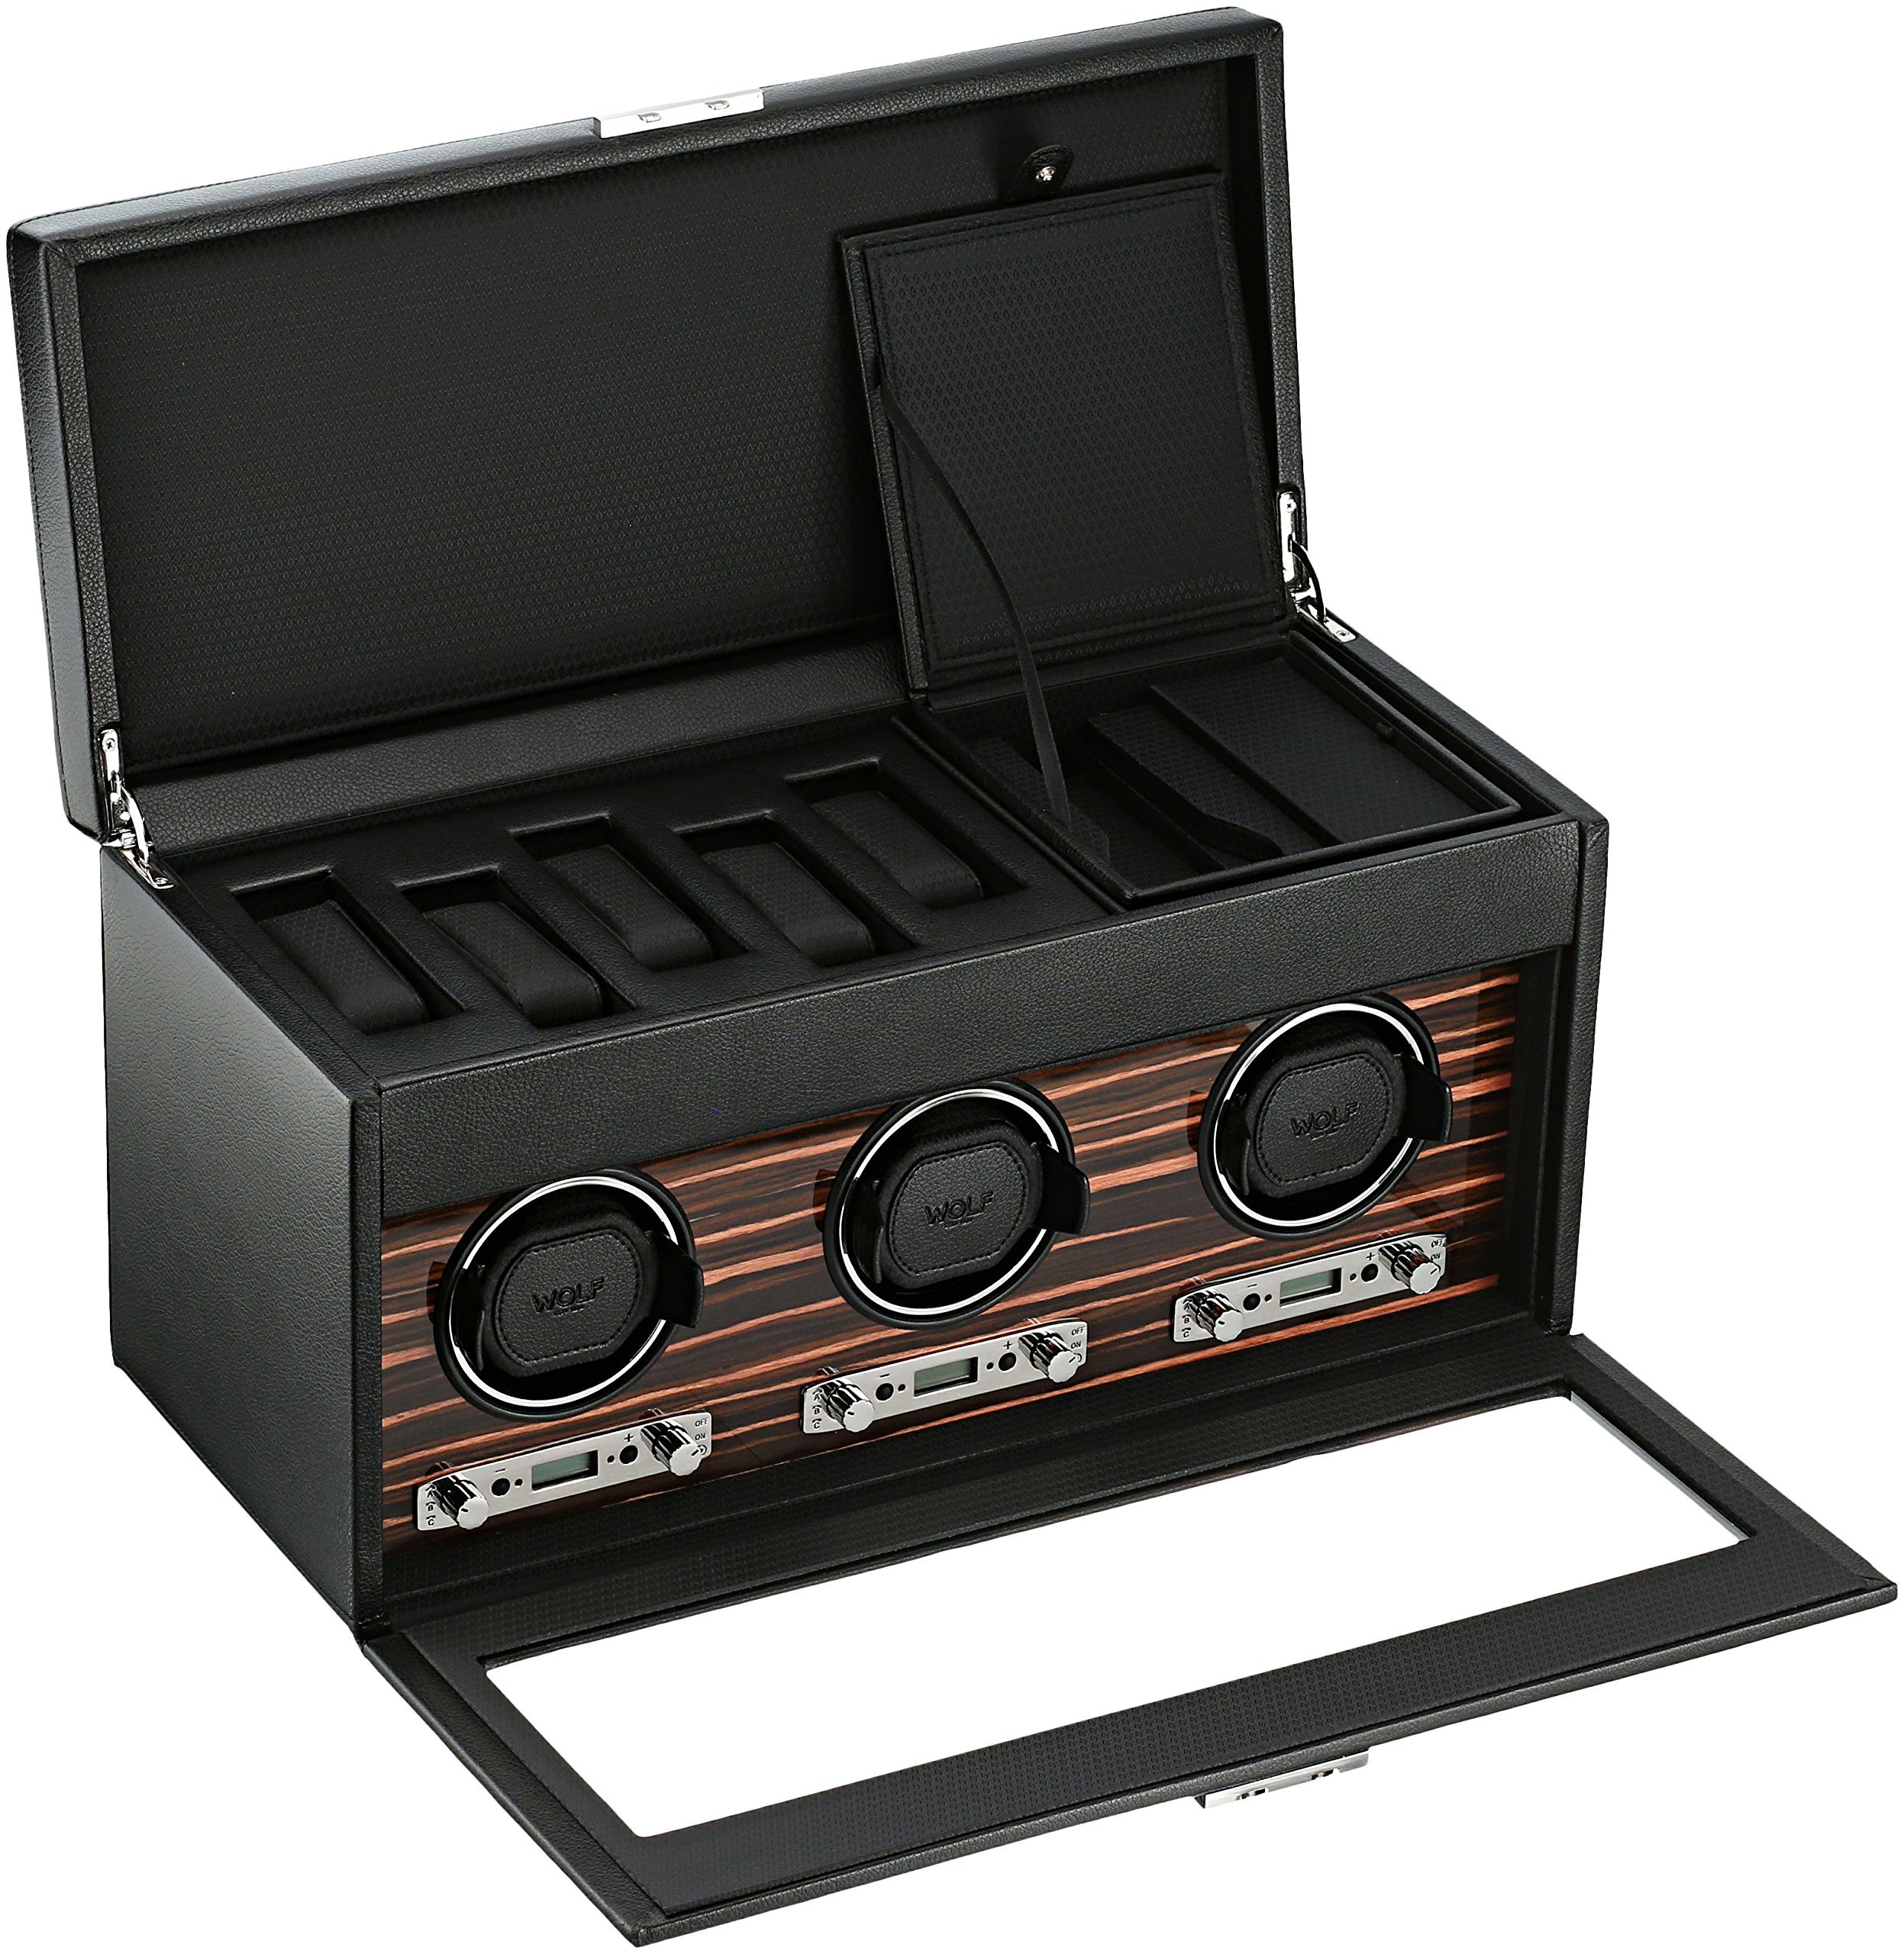 WOLF 457356 Roadster Triple Watch Winder with Cover and Storage, Black by WOLF (Image #2)